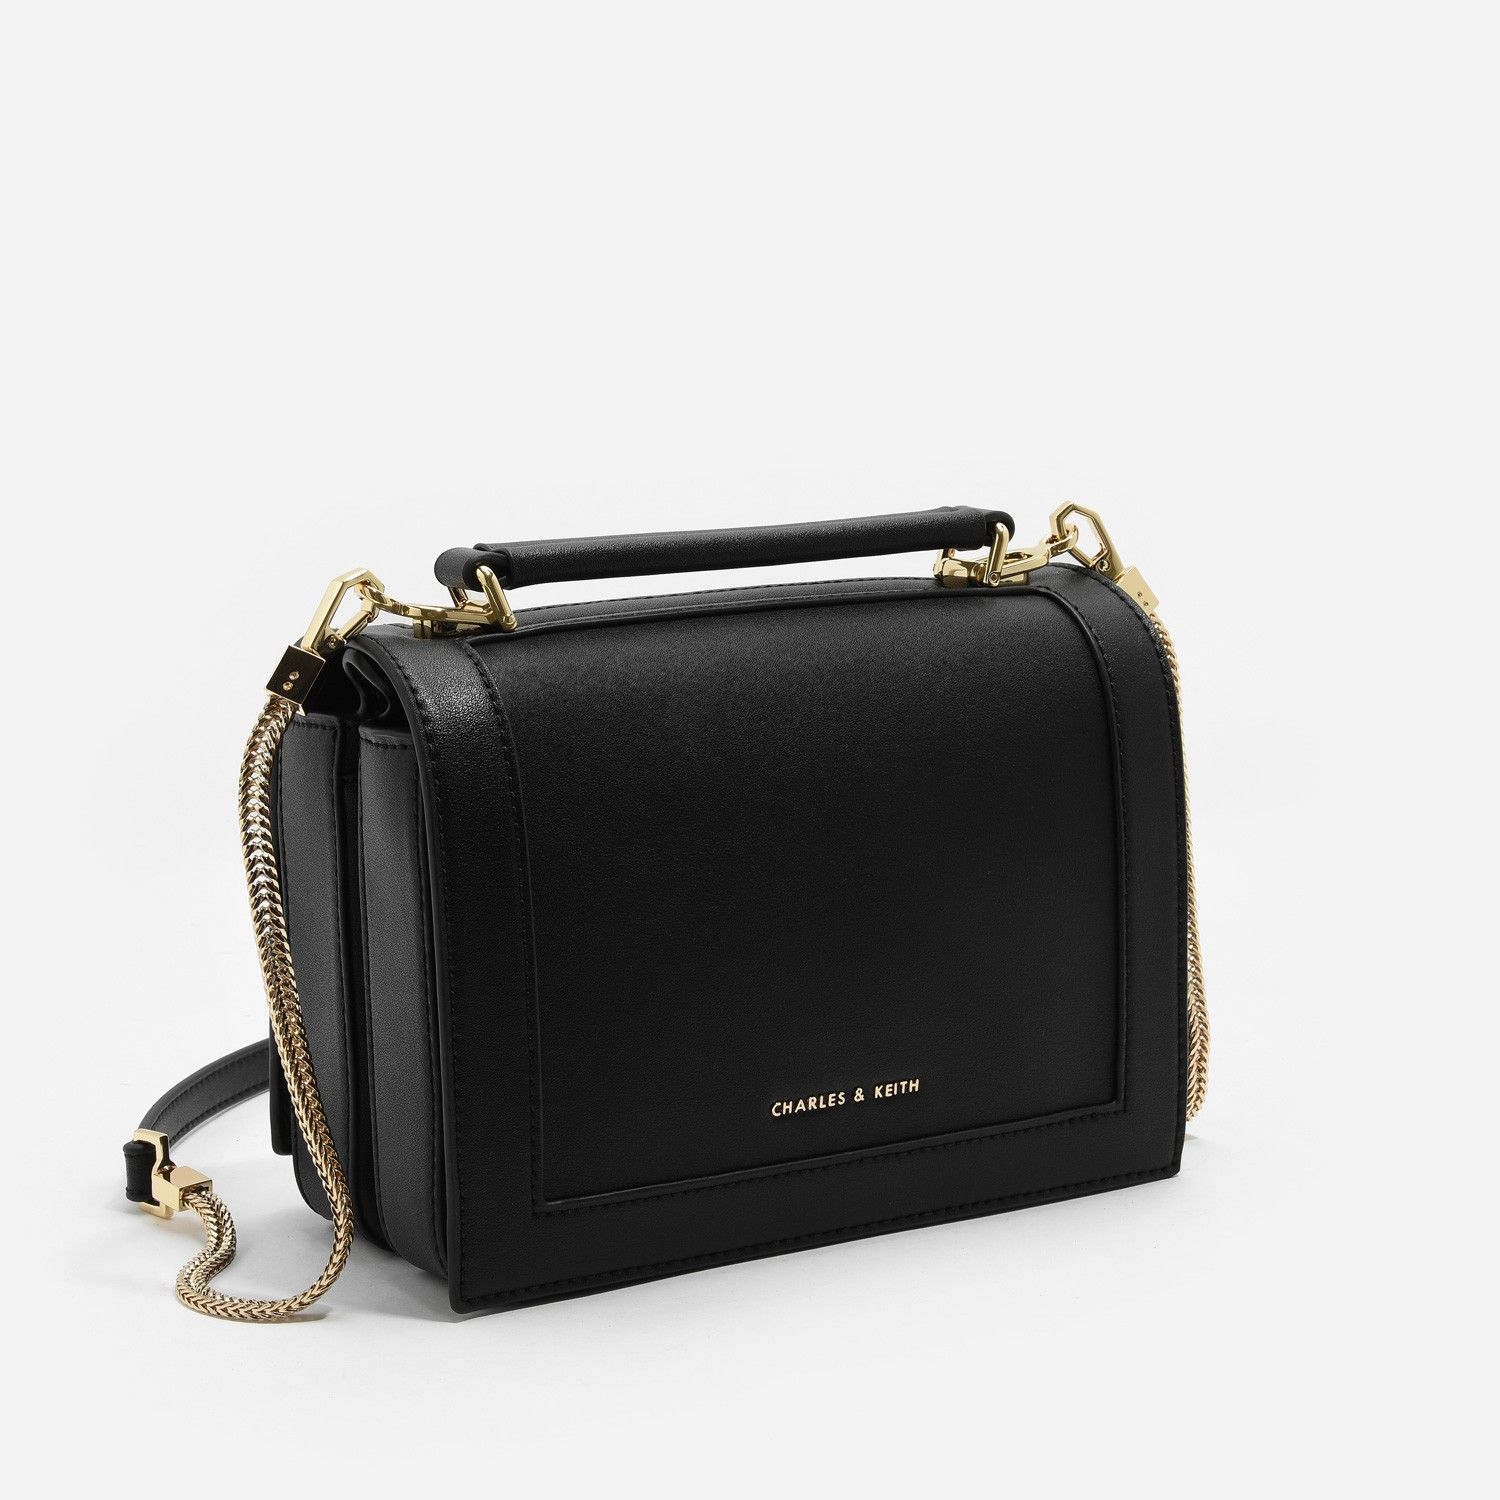 5bdab4c4d8f8 Black Front Flap Top Handle Sling Bag | CHARLES & KEITH | Bags ...